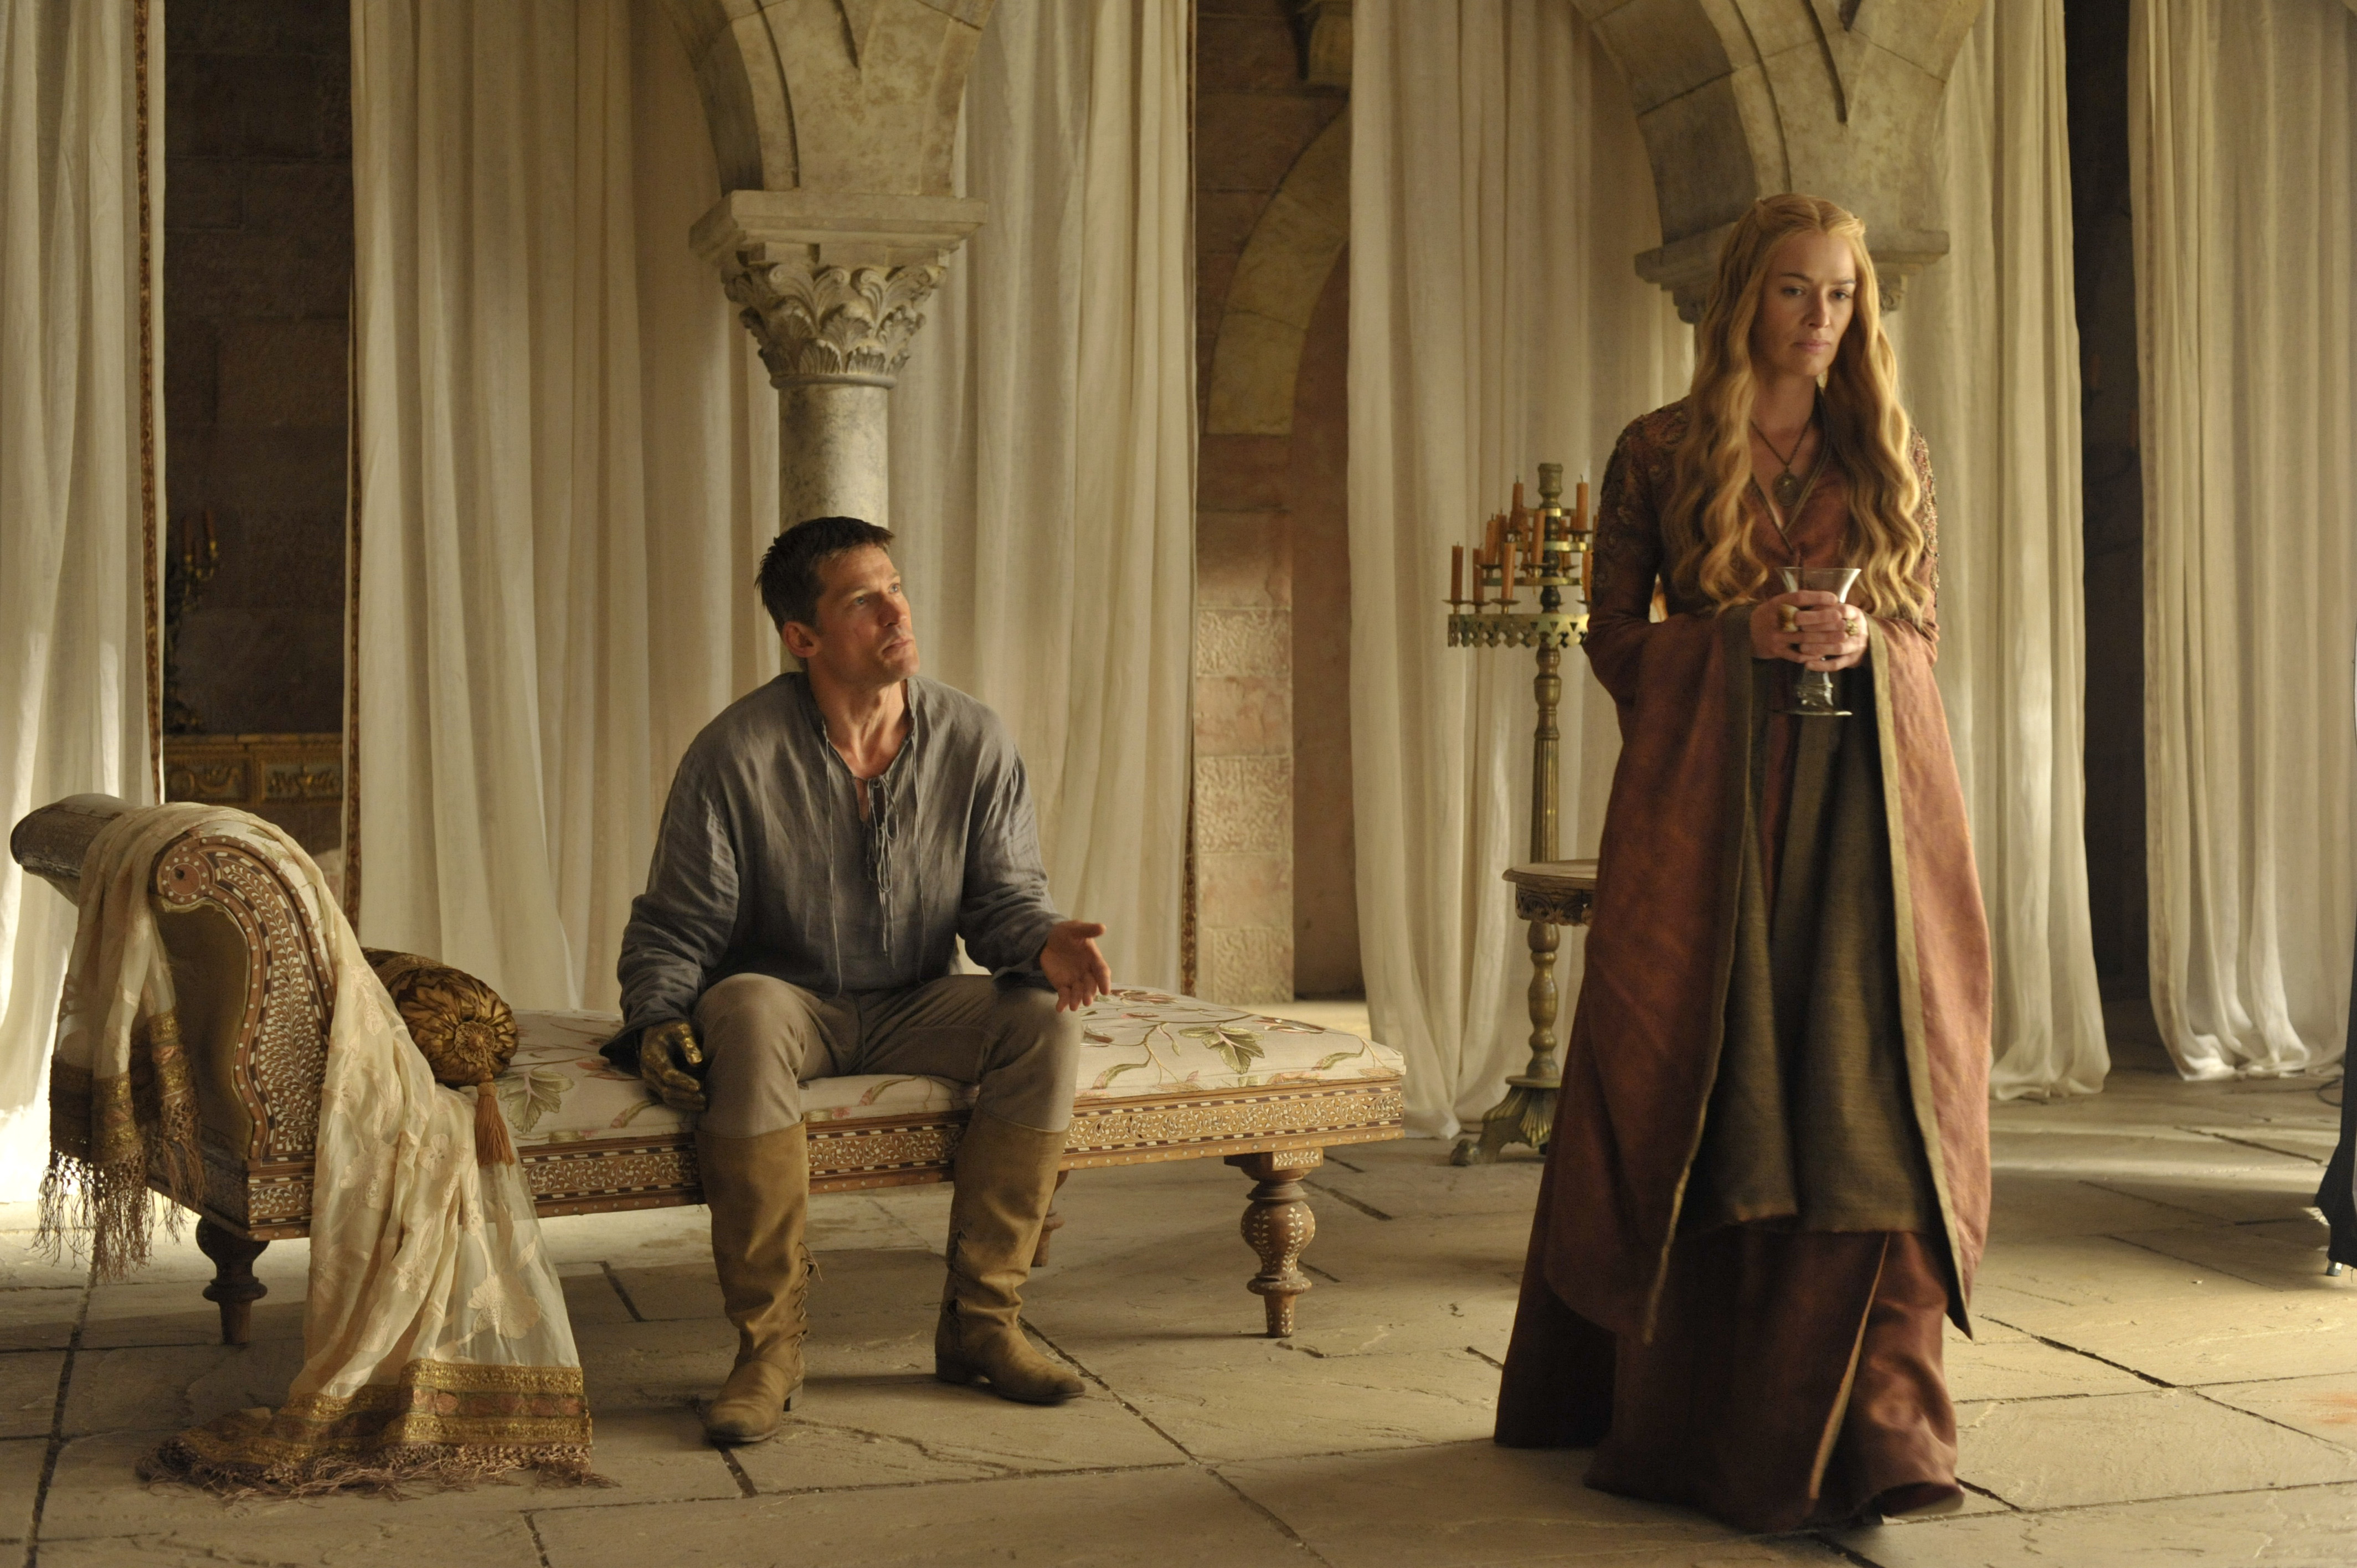 Jaime, played by Nikolaj Coster-Waldau, and Cersei, played by Lena Headey, in Game of Thrones